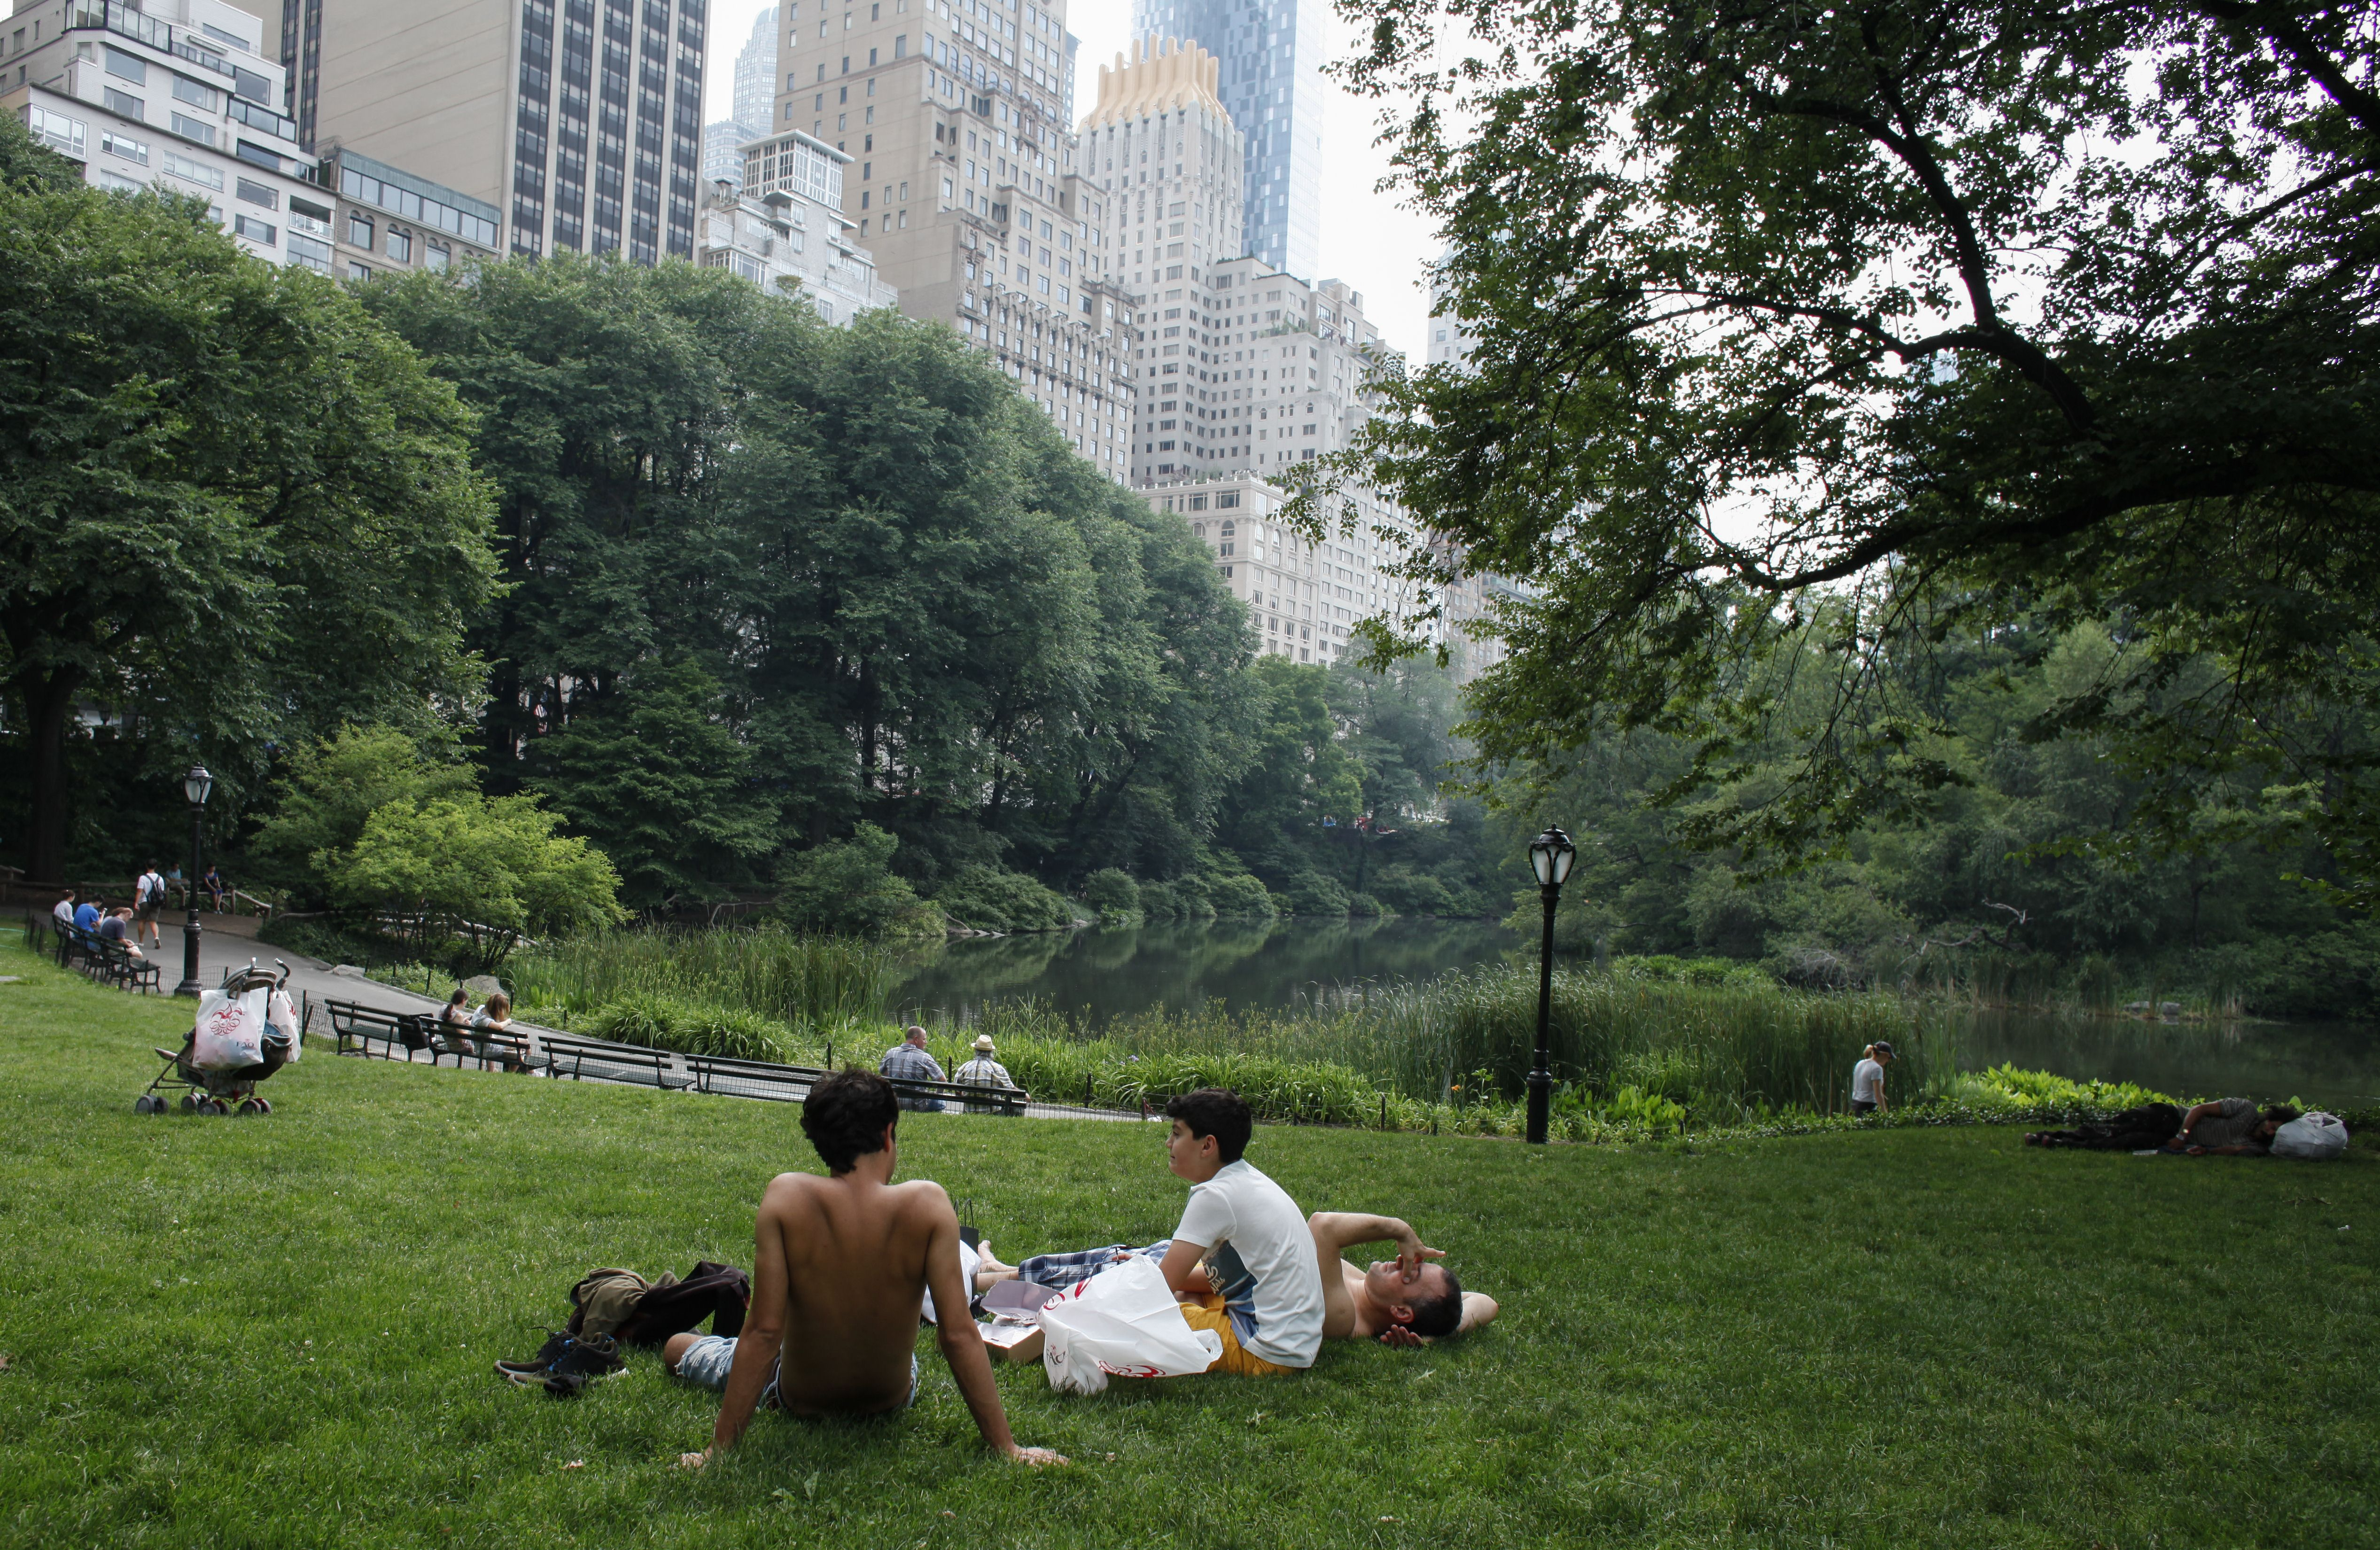 People gather in in Central Park as temperatures in Manhattan hit 90 degrees F (32C) for the first time in 2015, in New York City on June 11, 2015.